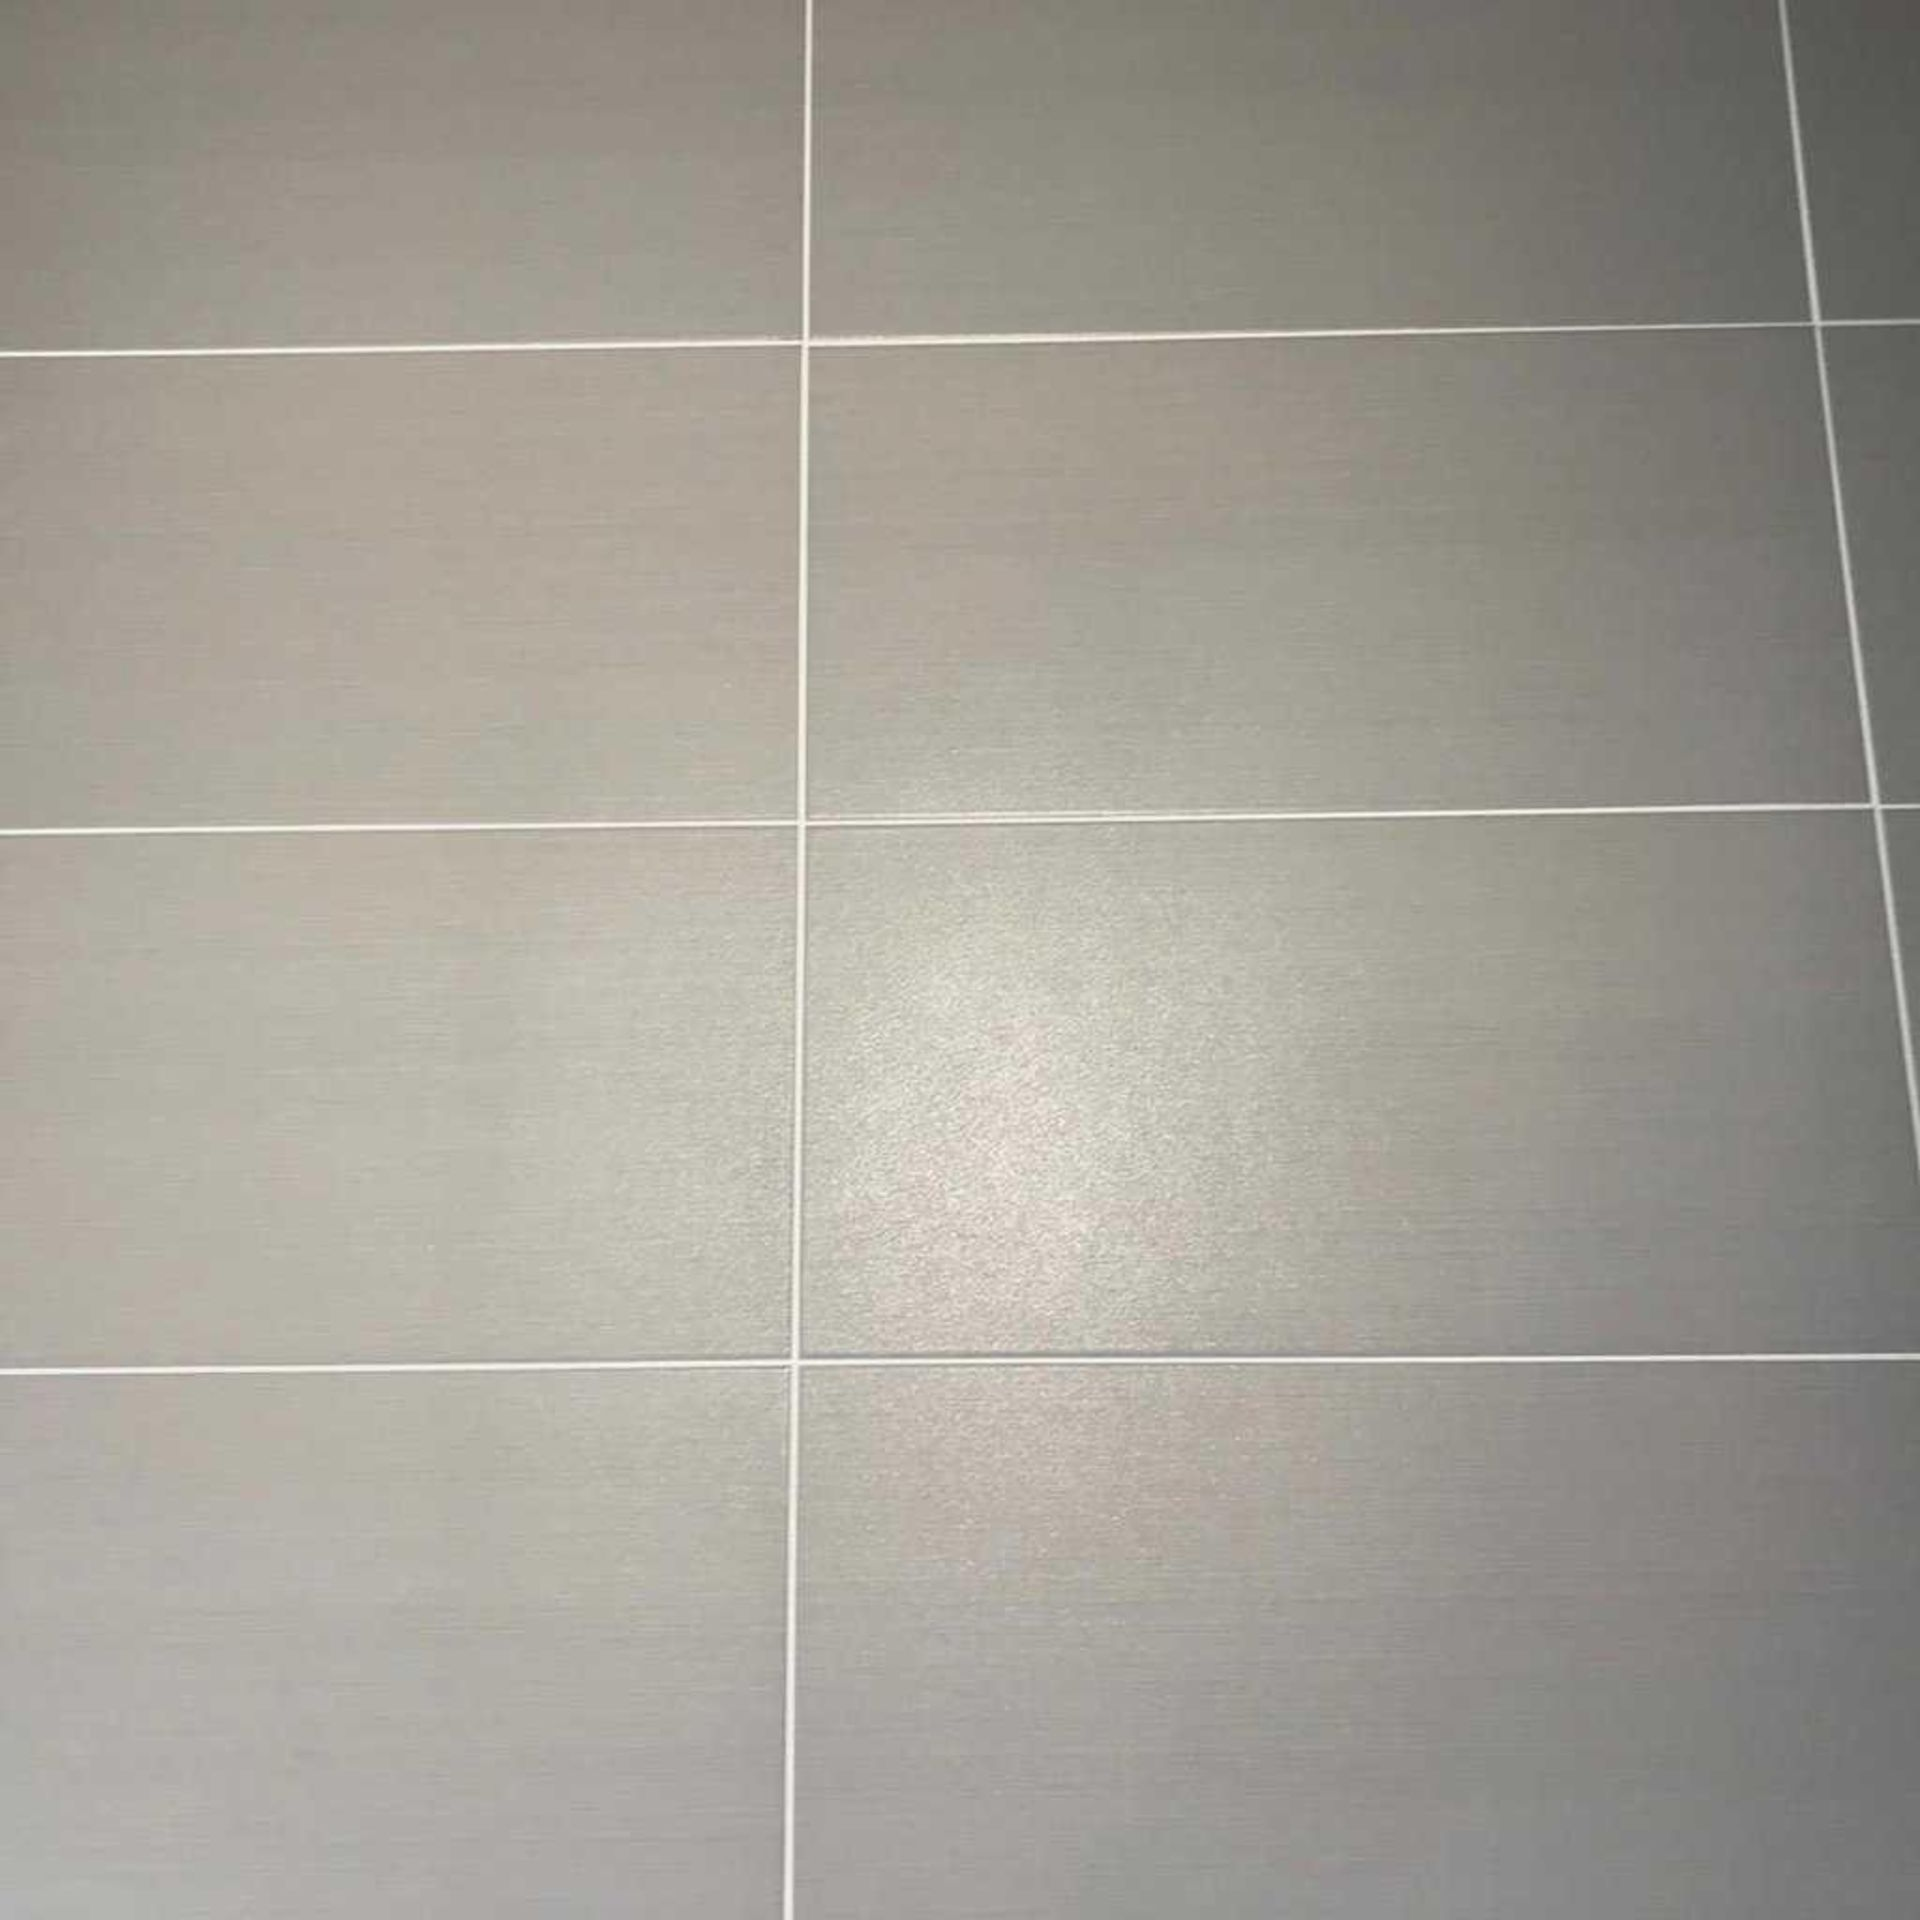 RRP £1000 Pallet To Contain 40 Brand New Packs Of 5 Johnson's Lat12A Latitude Smoke Satin Tiles (